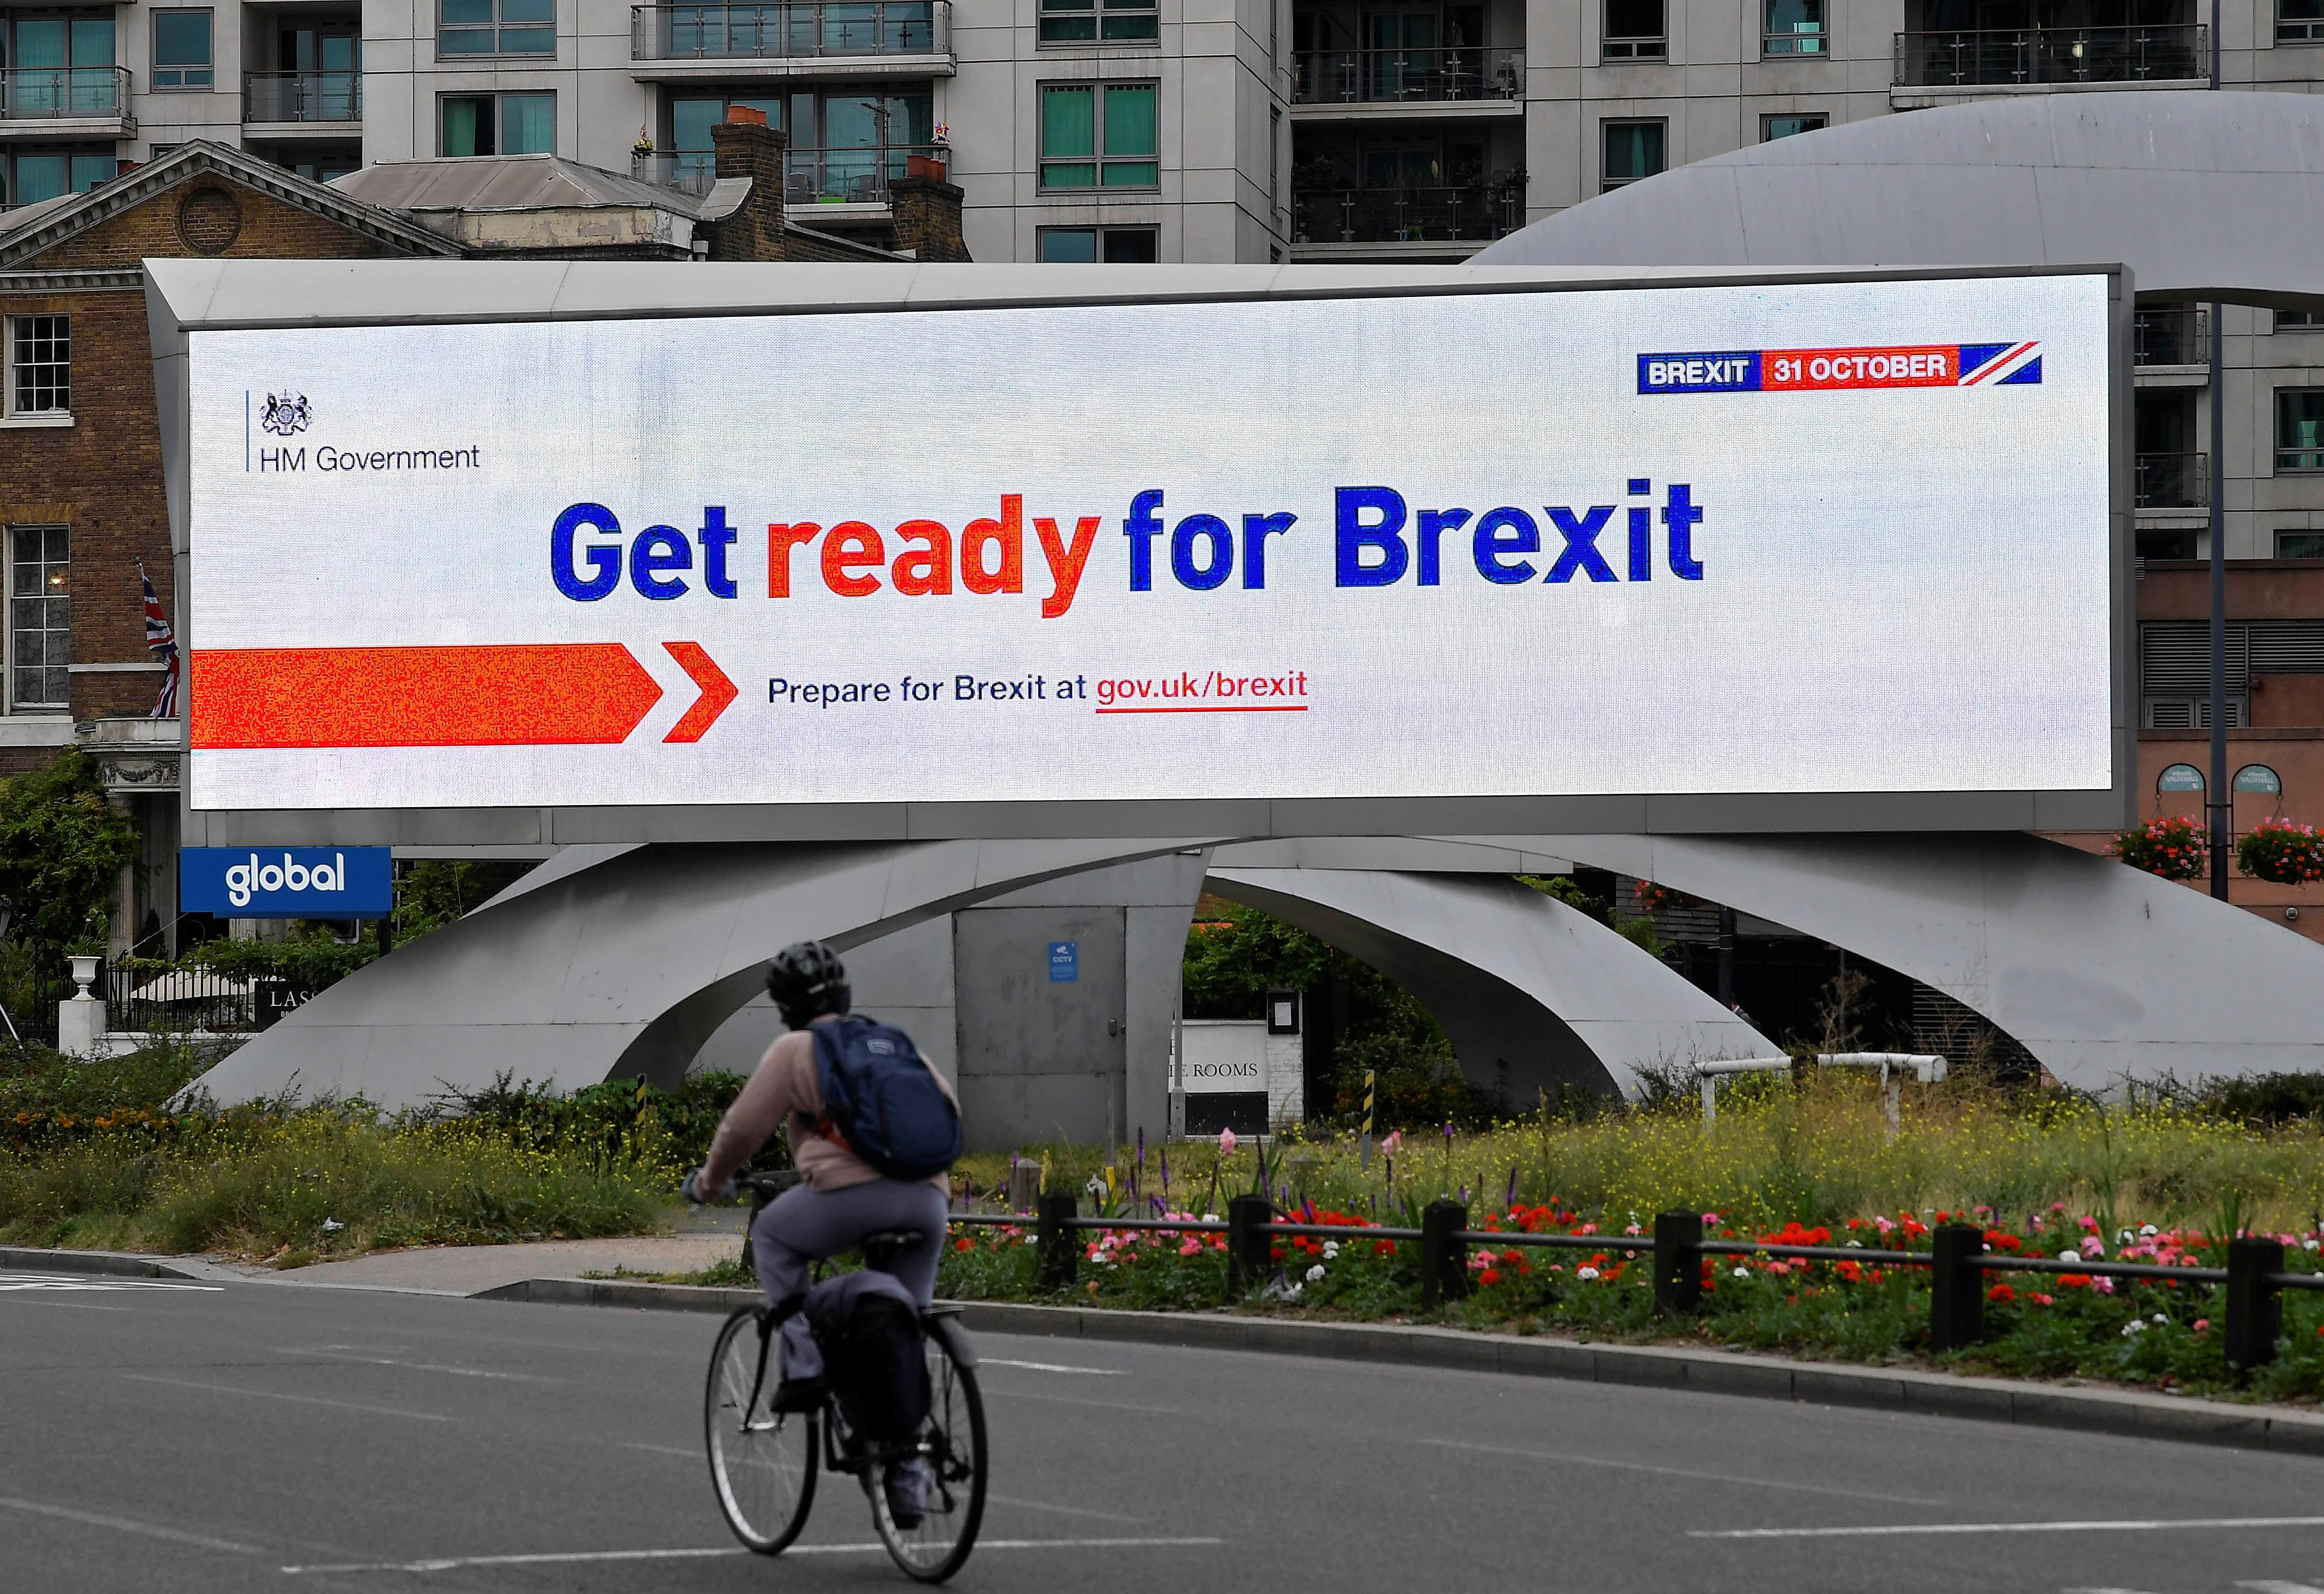 EU businesses warn no-deal Brexit would be disaster